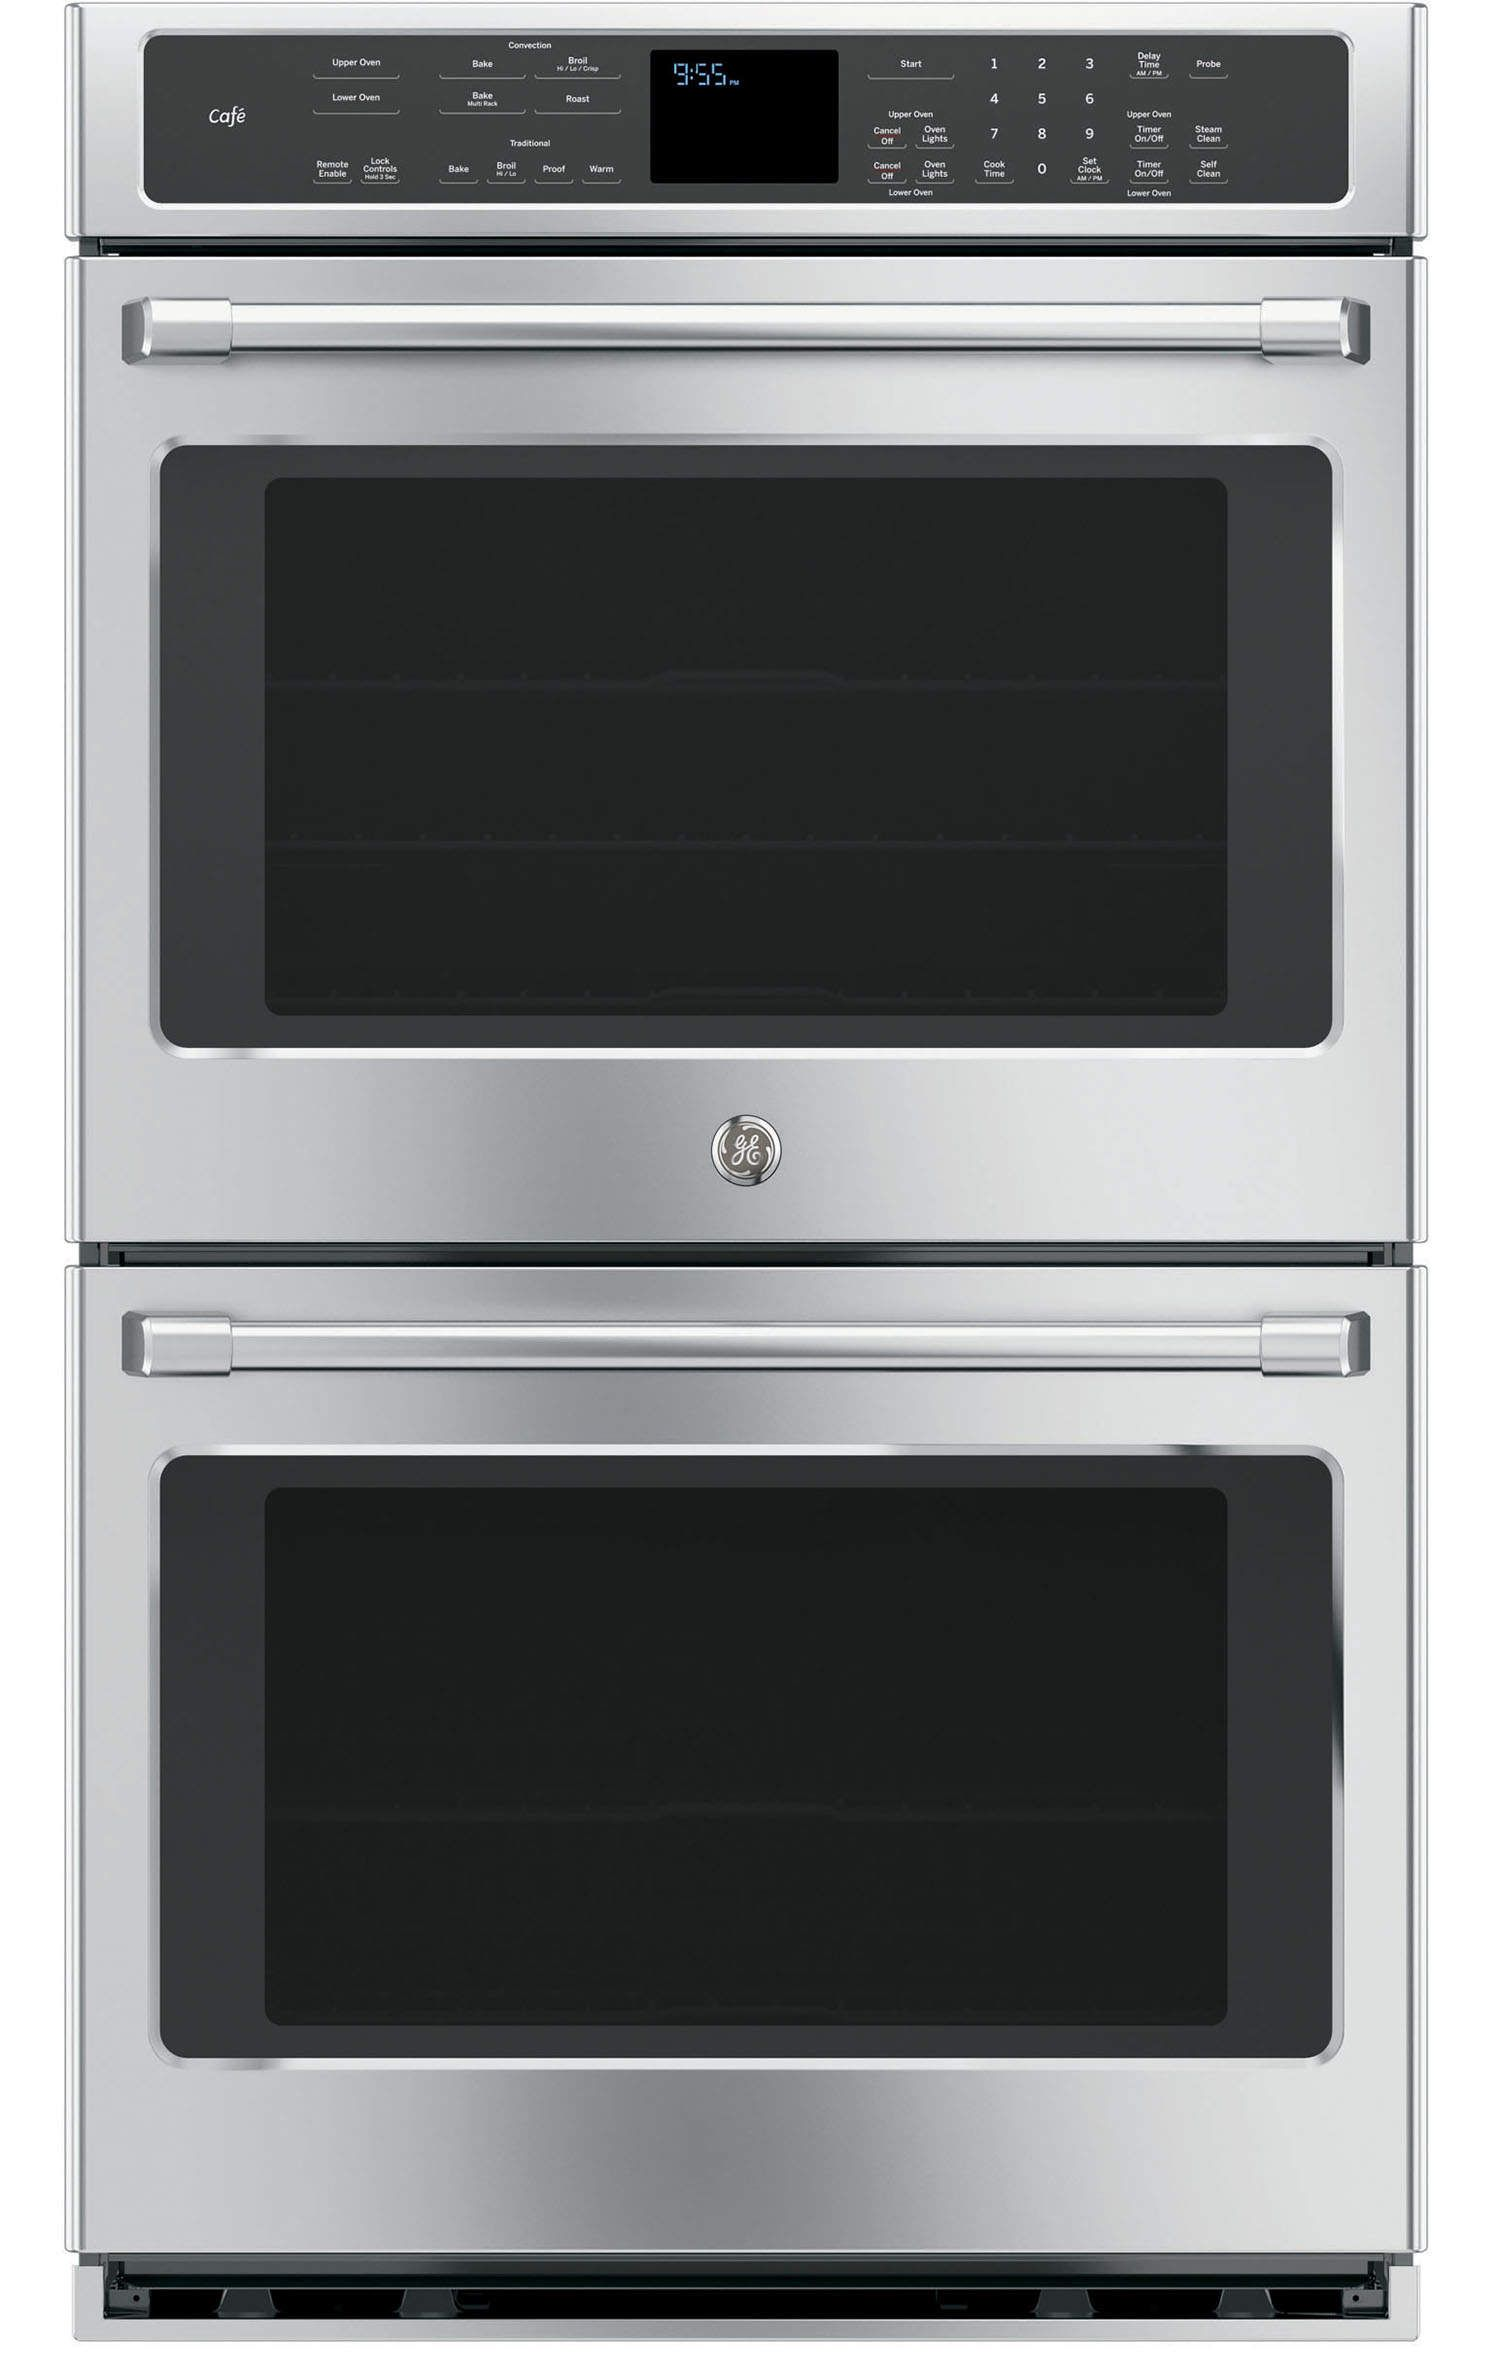 Cafe CT9550SHSS 30 Inch Stainless Steel Electric Double